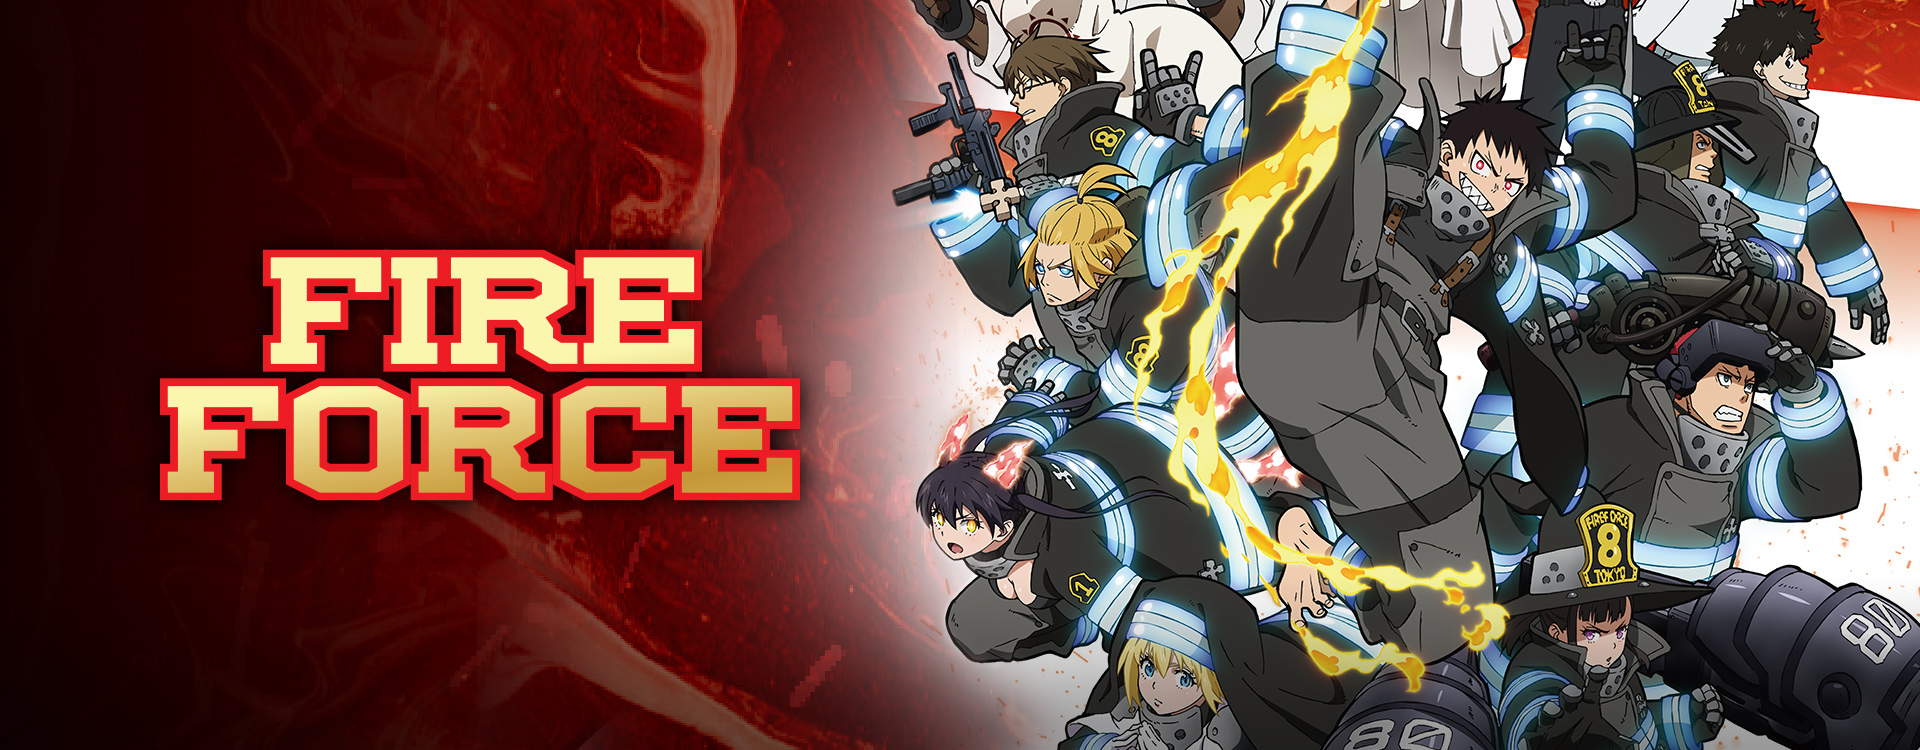 Watch Fire Force Sub Dub Action Adventure Sci Fi Anime Funimation He's also the one who saved shinra's life 12 years ago. watch fire force sub dub action